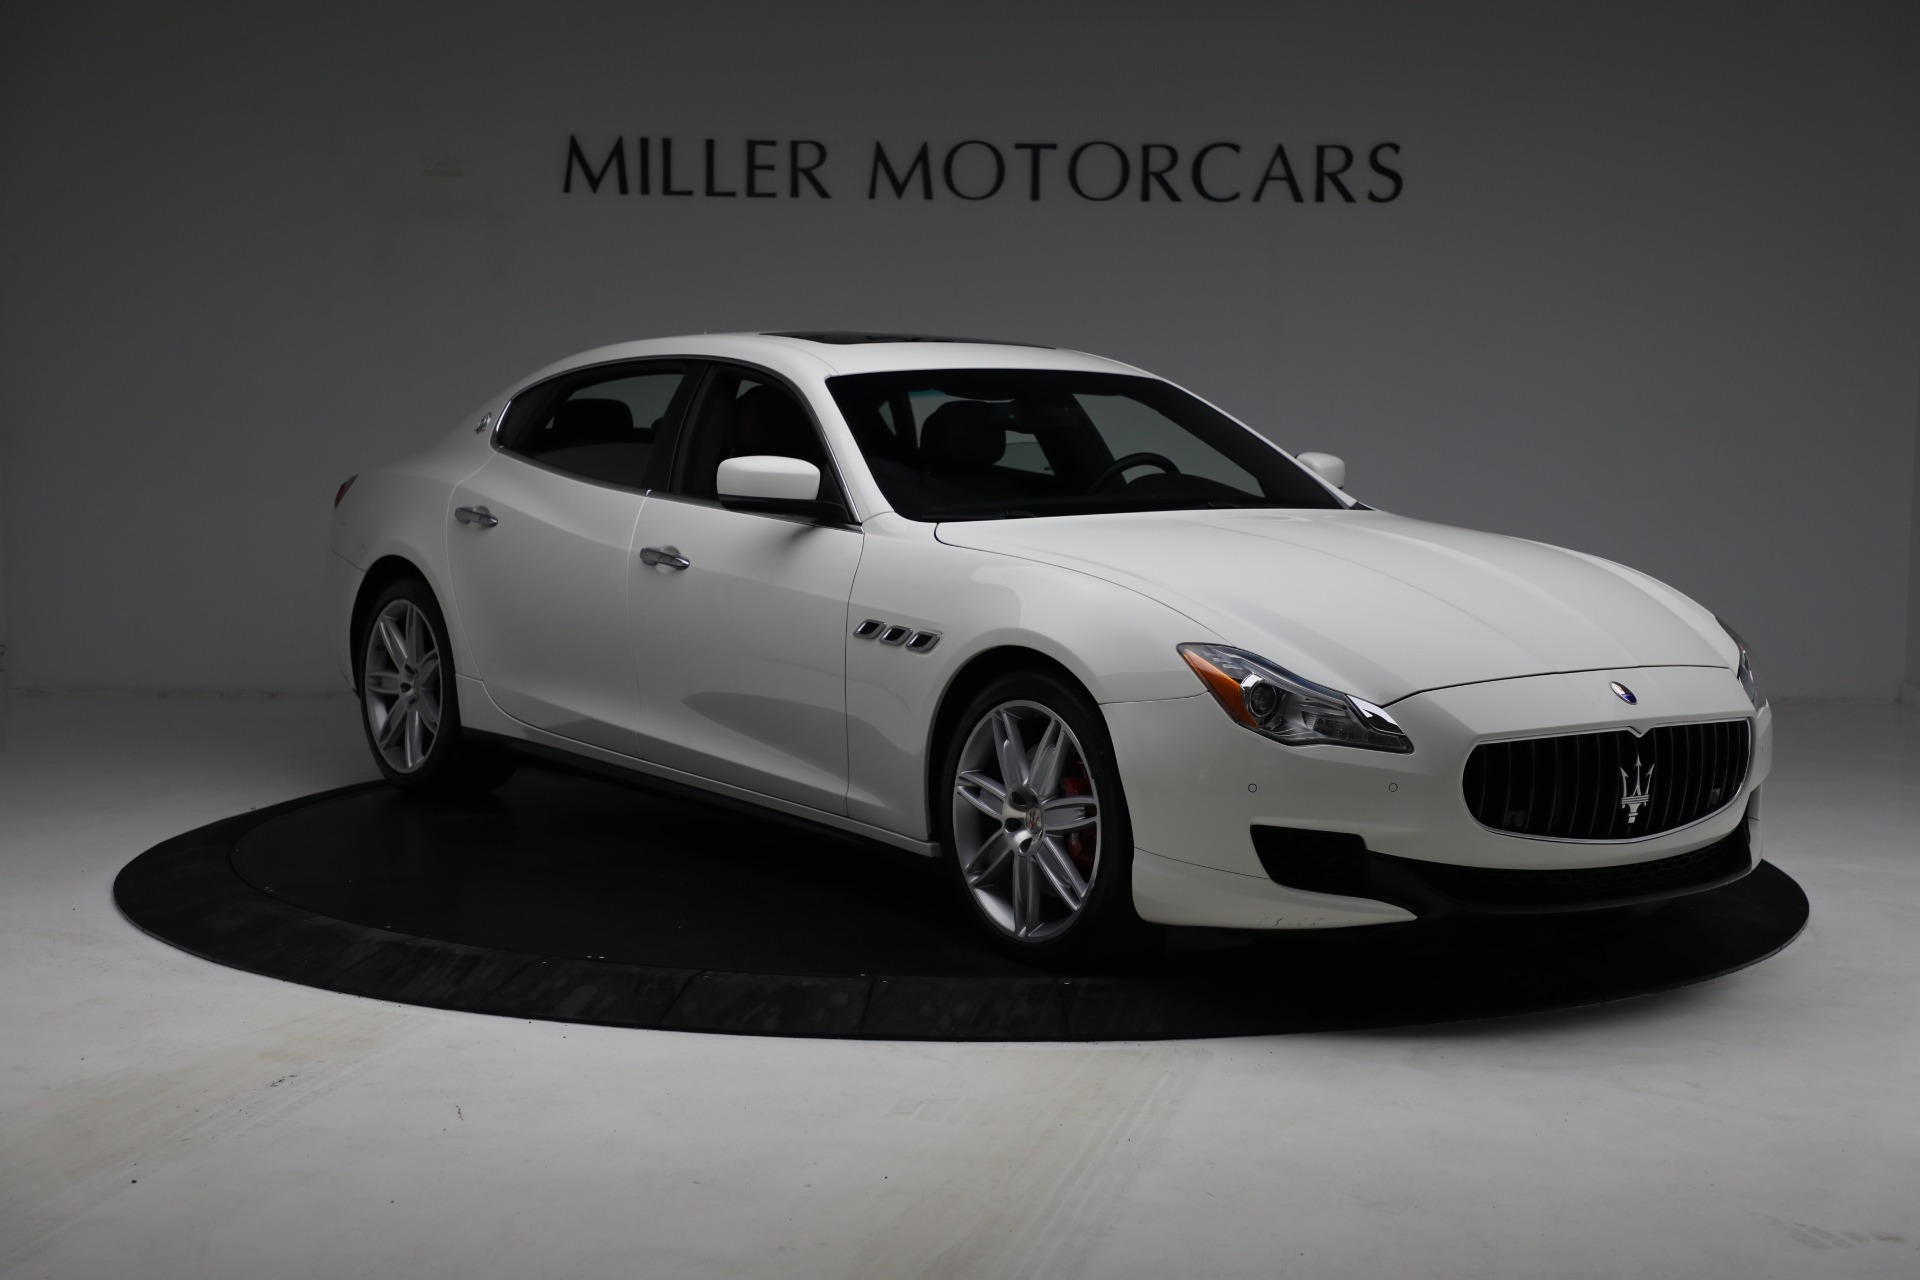 Used 2015 Maserati Quattroporte S Q4 For Sale In Greenwich, CT. Alfa Romeo of Greenwich, 7469 2915_p10